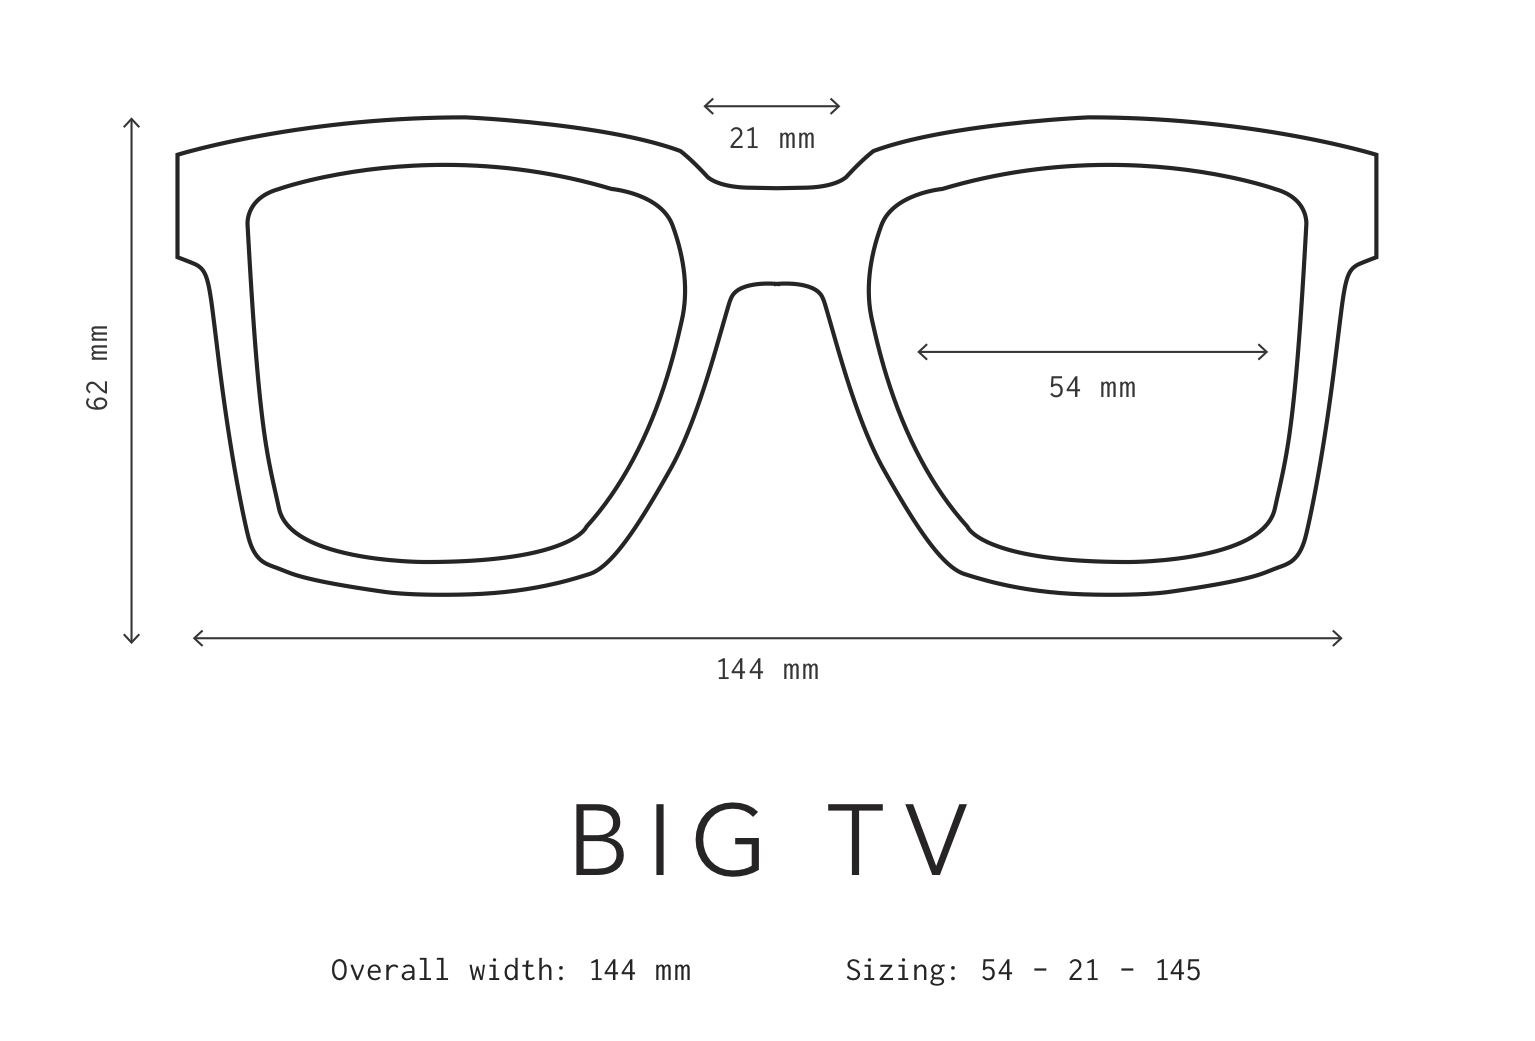 Big TV Sunglasses Sizing Information